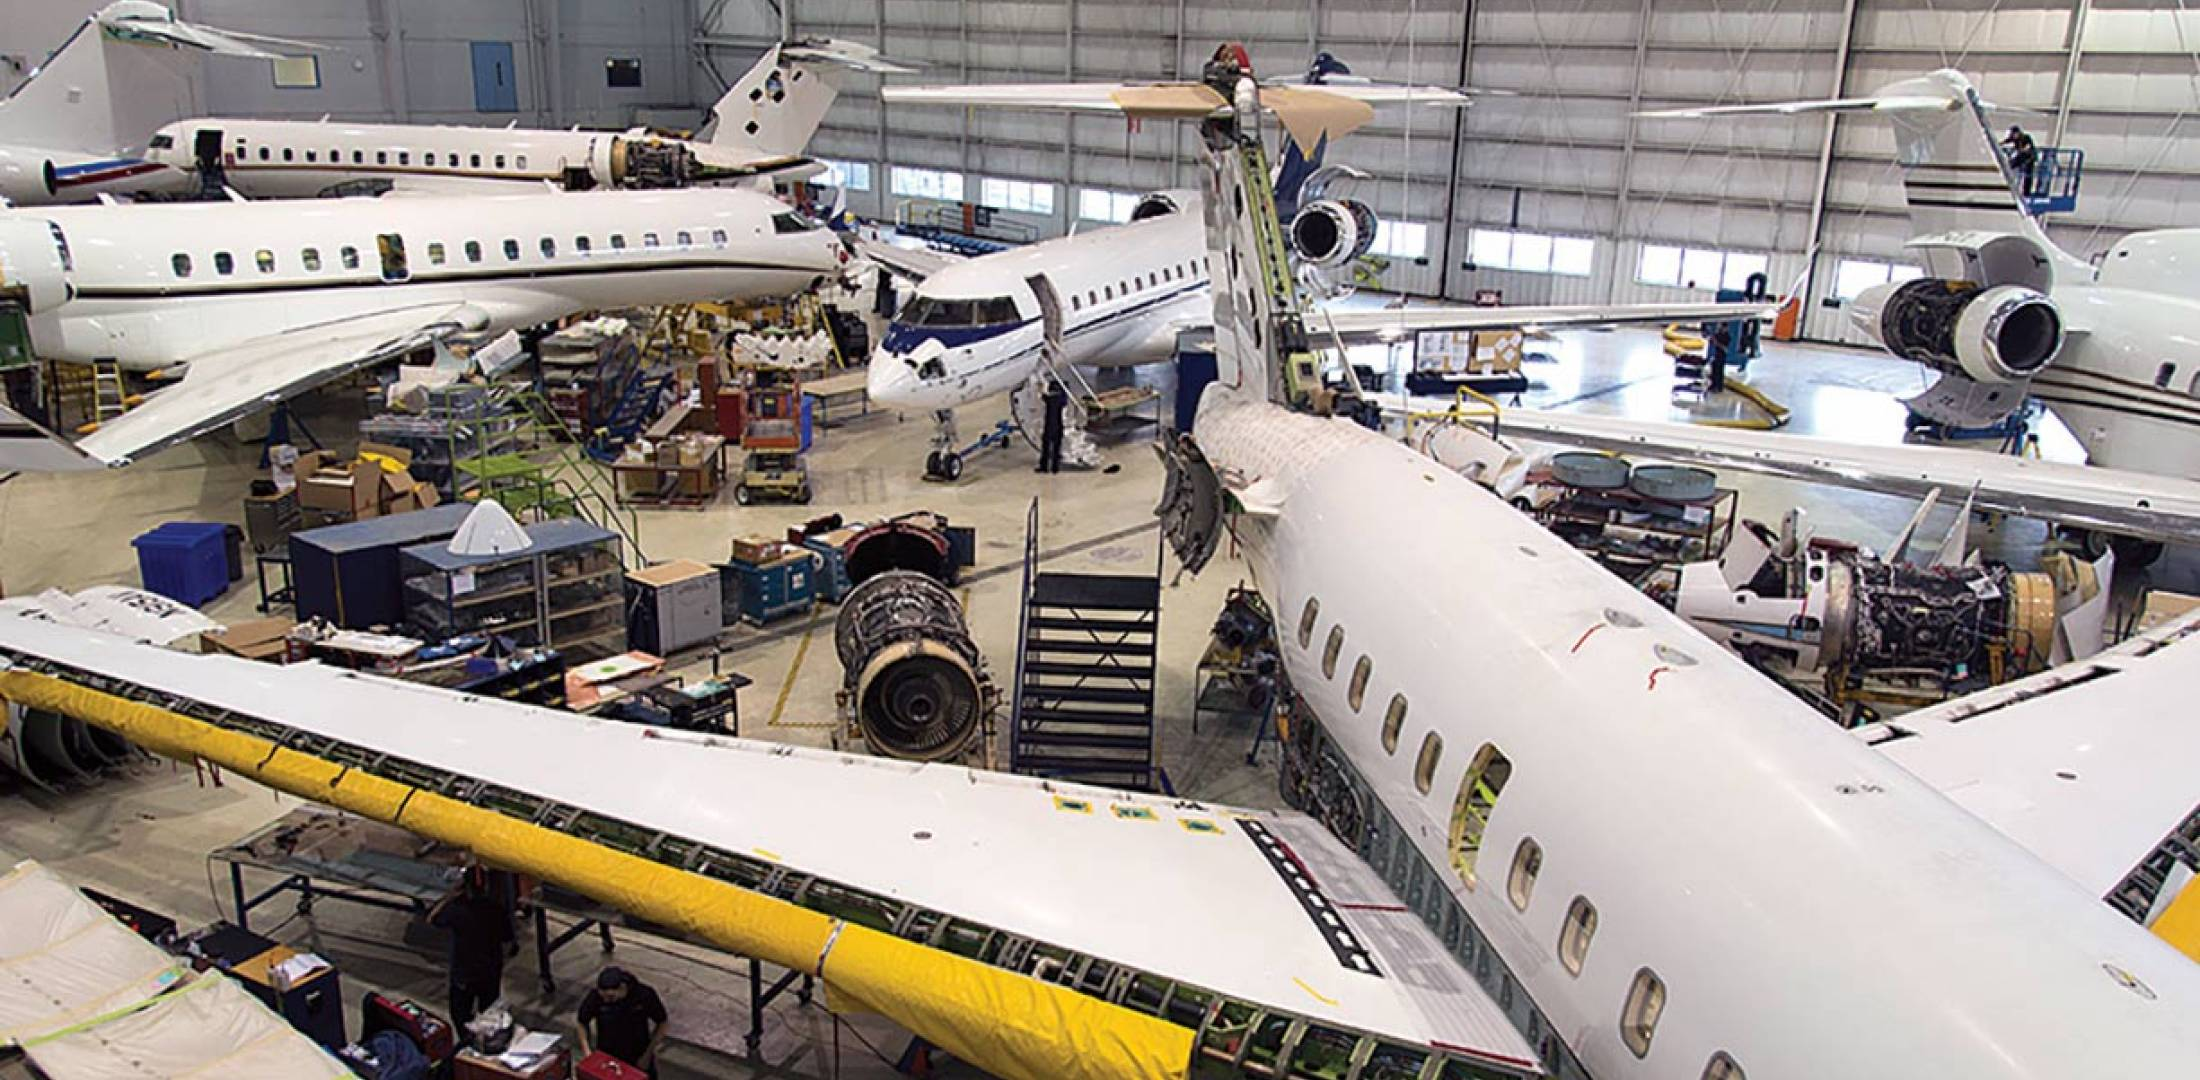 """Canada-based Innotech Aviation has a solid background of experience with Bombardier Challengers and Globals. The MRO claims """"A-to-Z"""" support capability, including charter ops."""